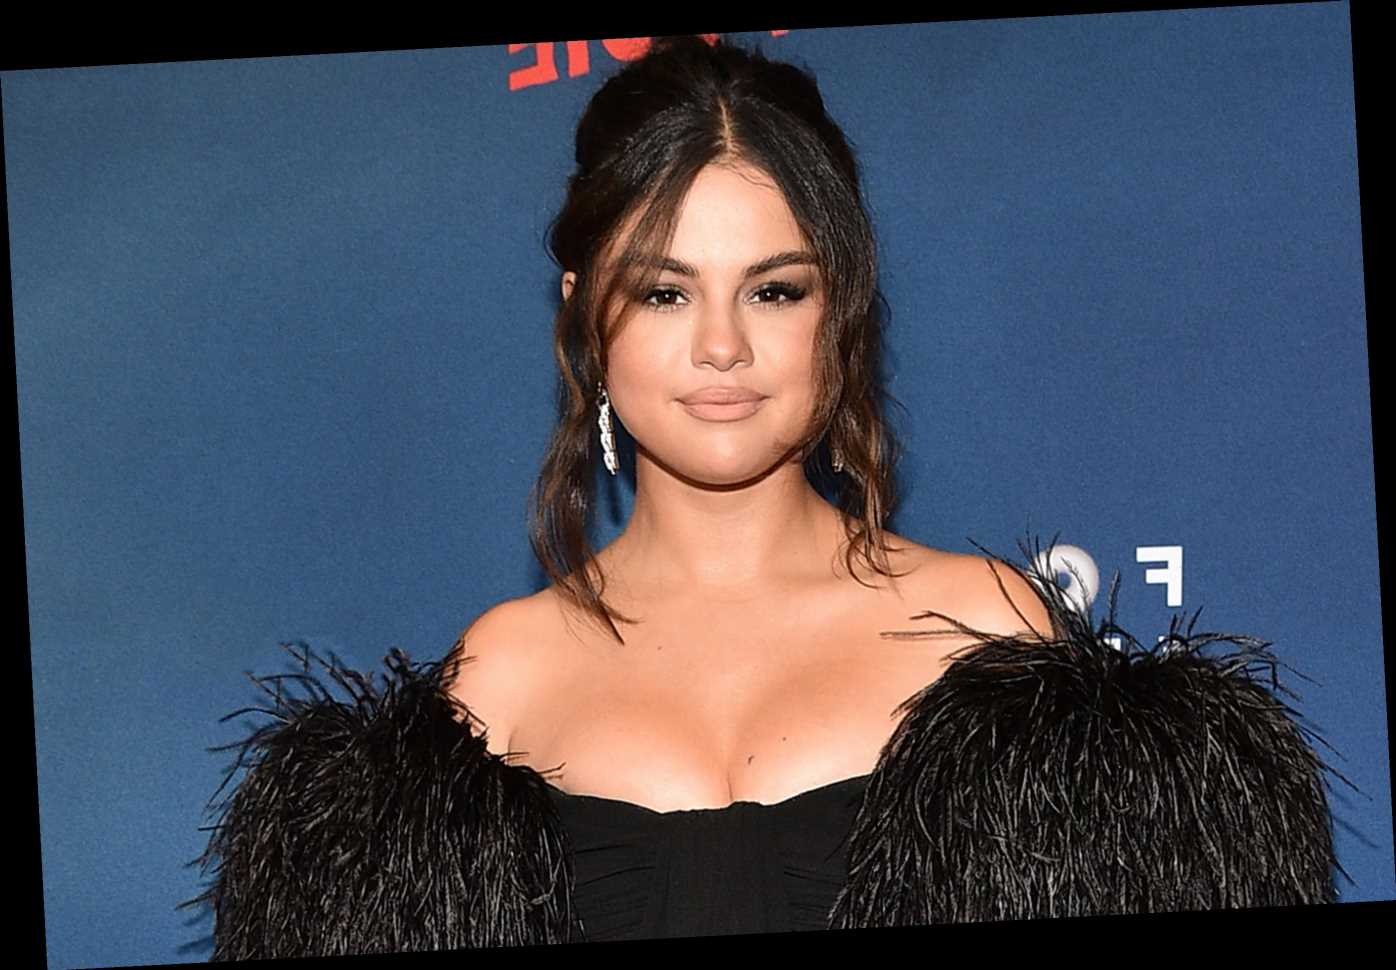 Selena Gomez Says She Thinks About Undocumented Immigration 'Every Day' in Passionate Essay